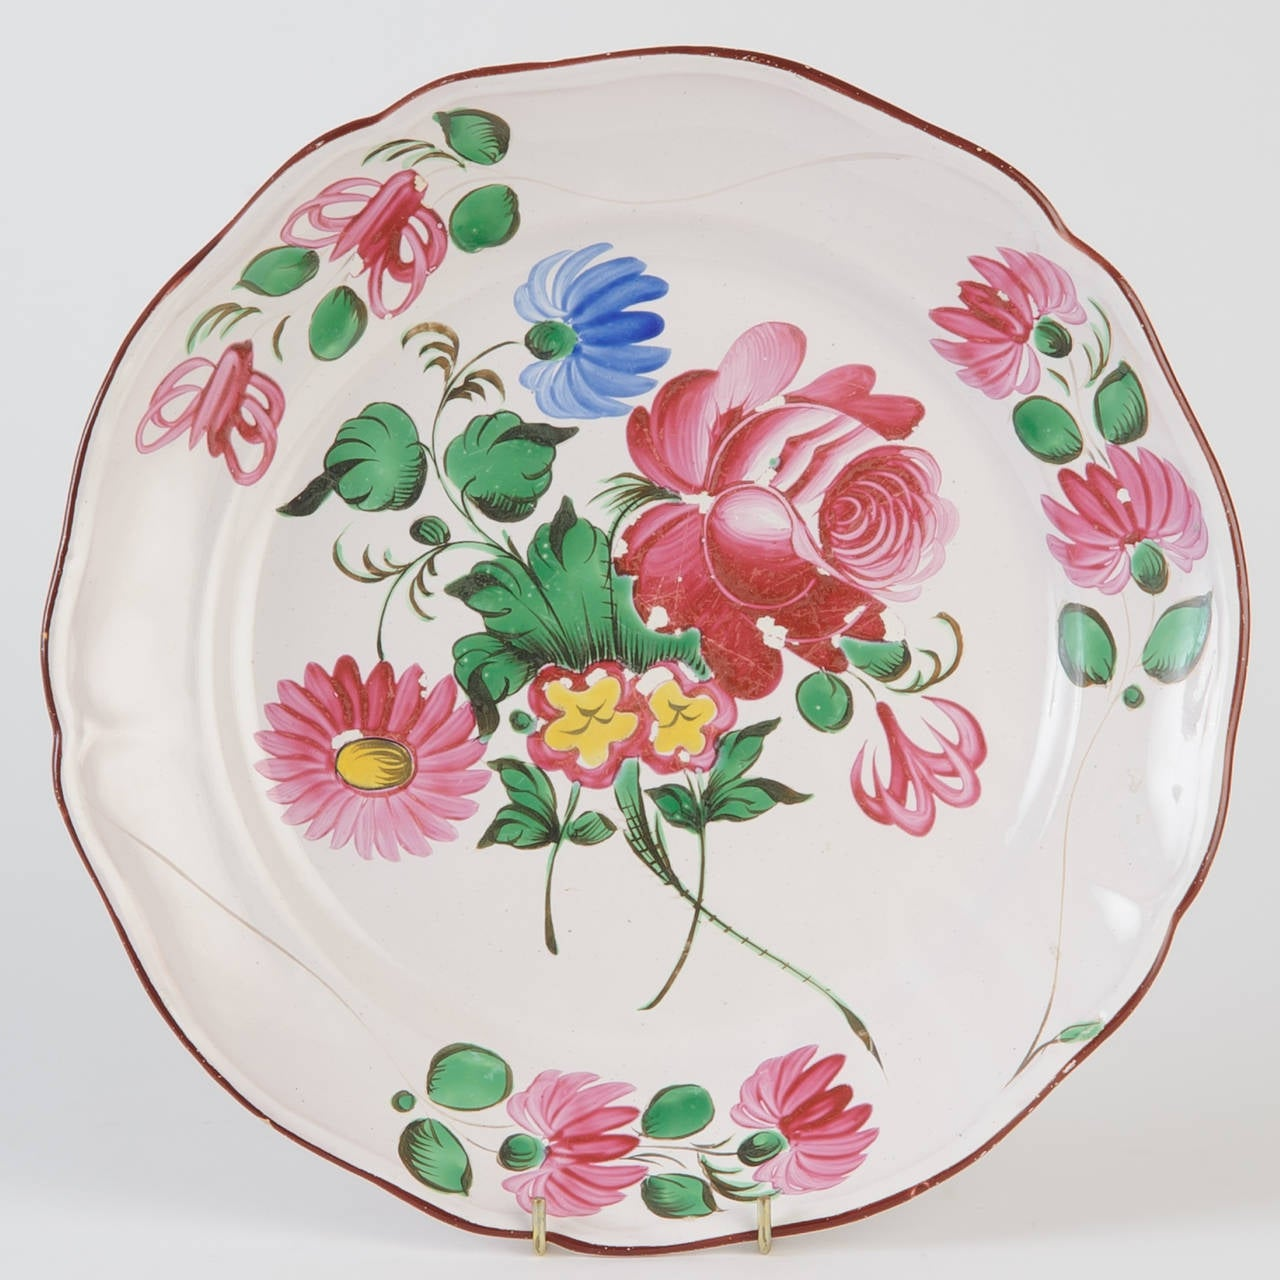 18th C French Faience Plates For Sale At 1stdibs